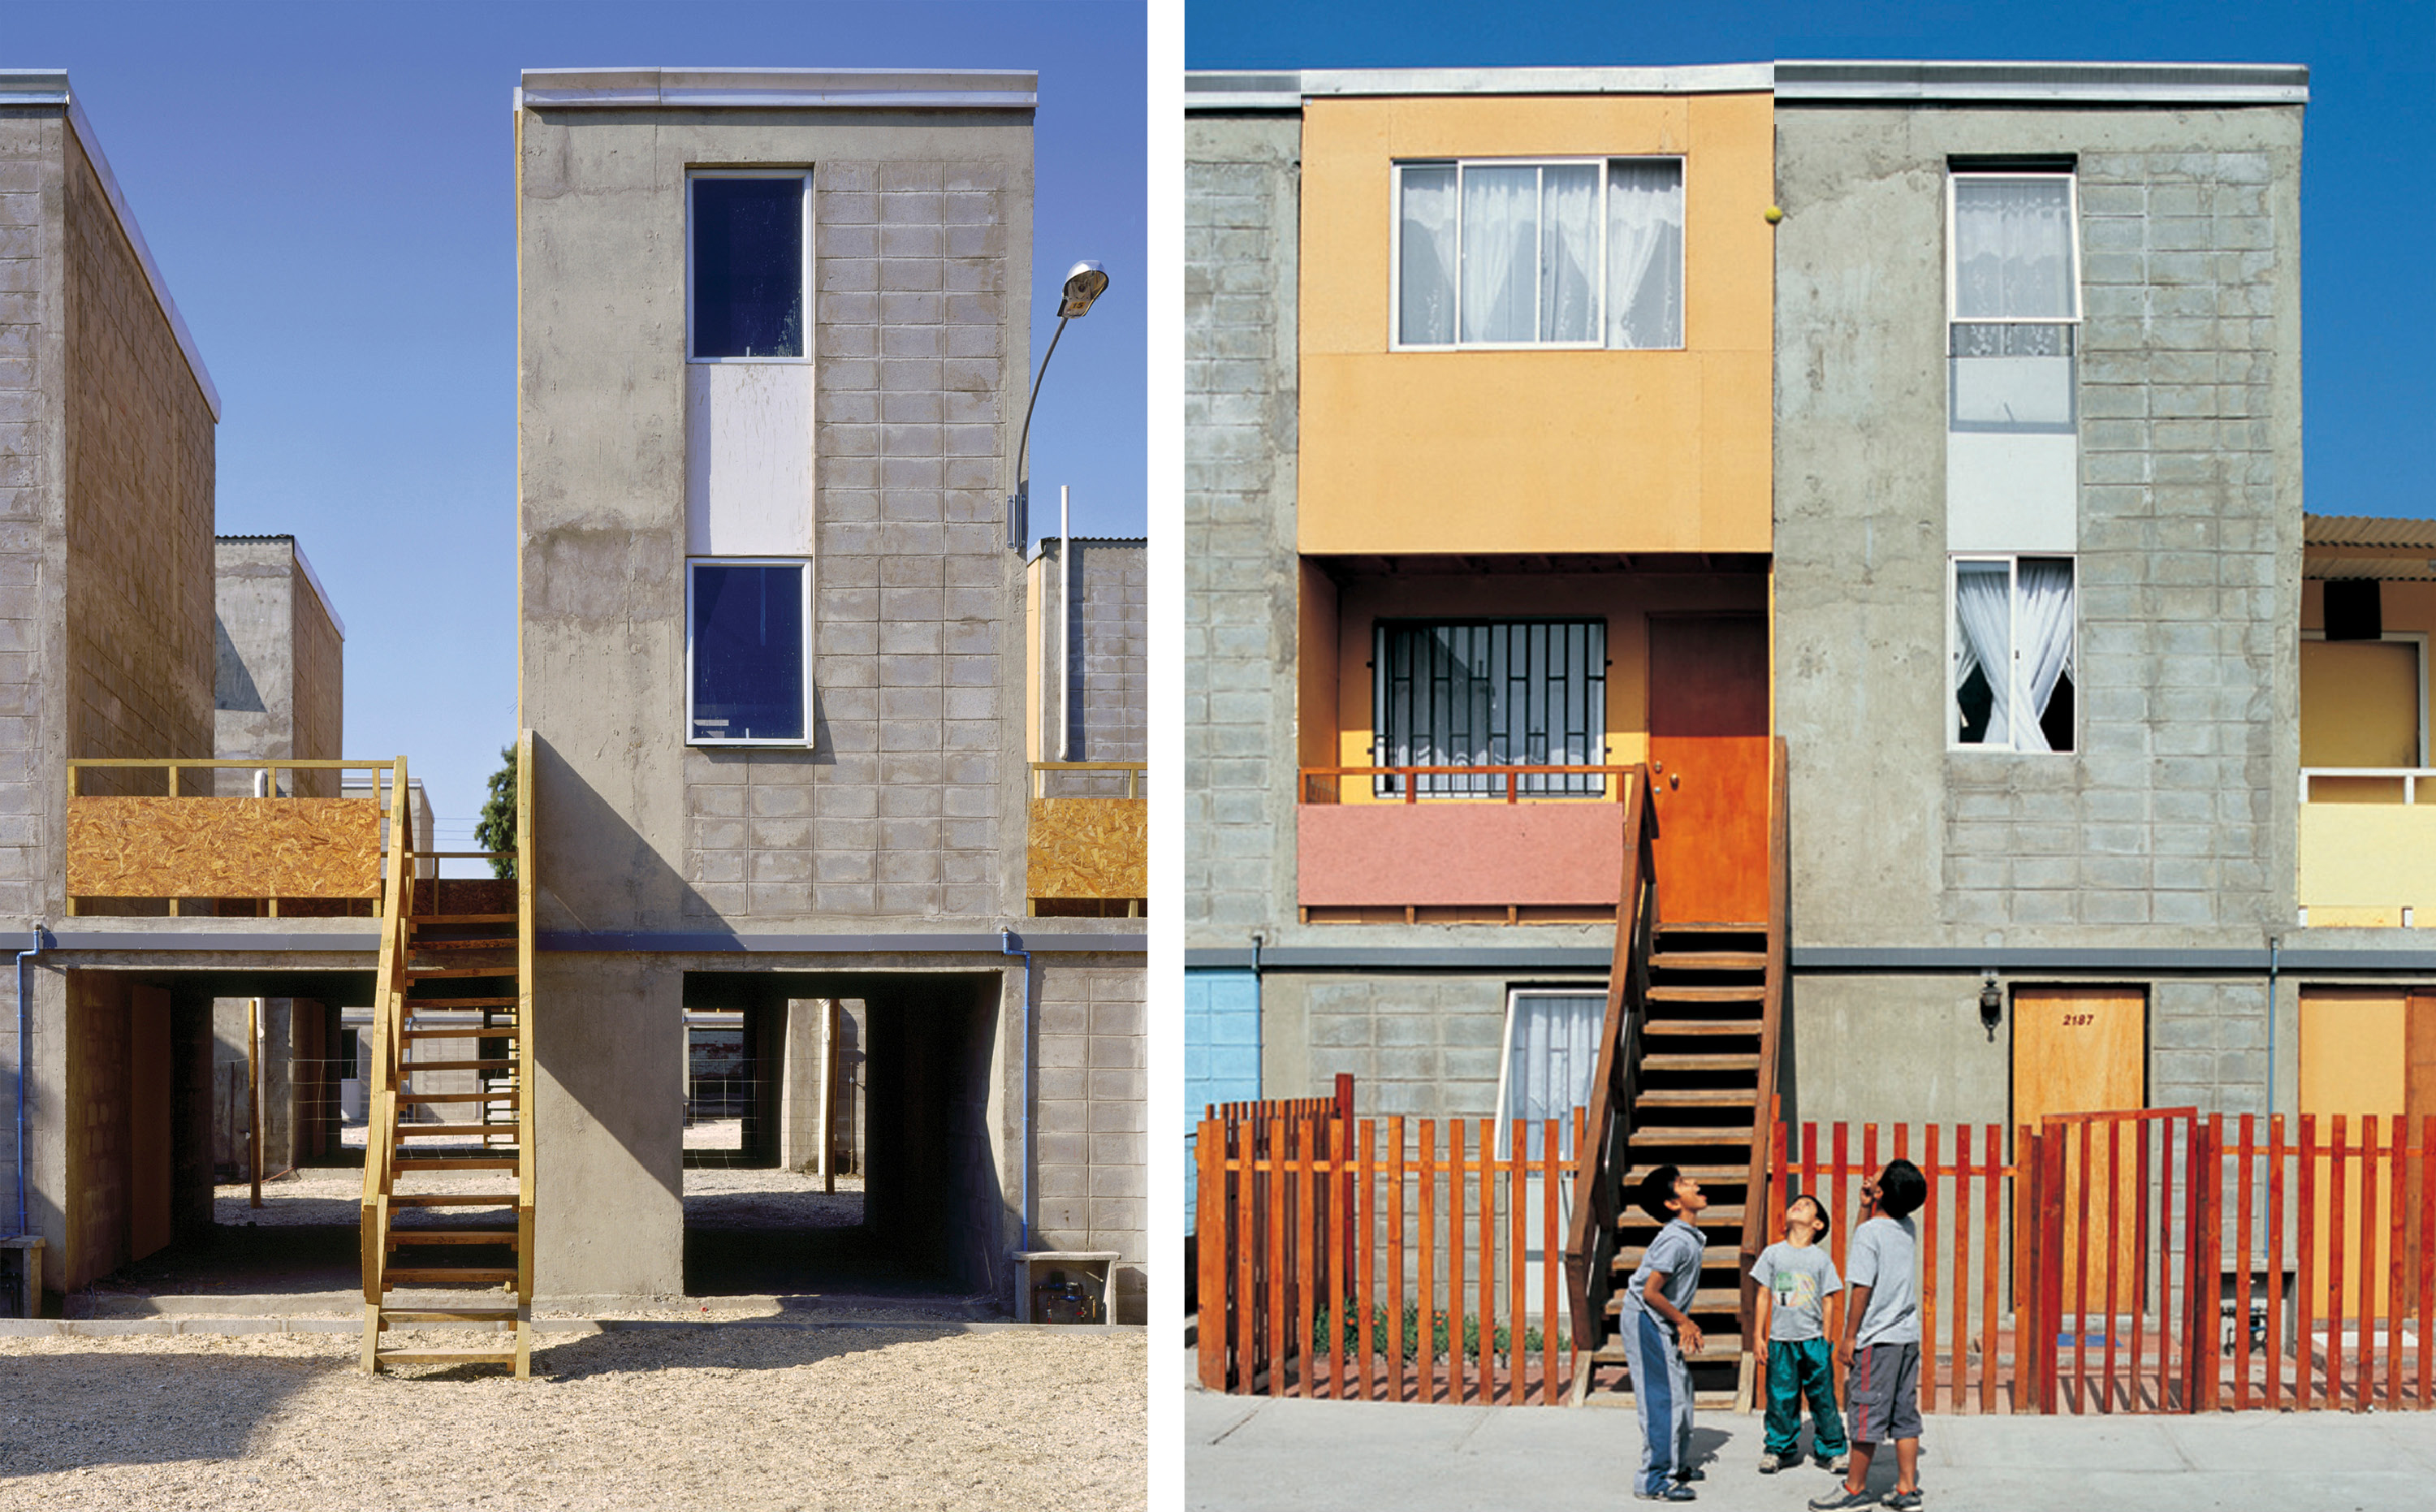 Elemental built a series of low-income housing units at the request of the Chilean government at the Quinta Monroe housing development in Iquique, Chile. Photos by Cristobal Palma